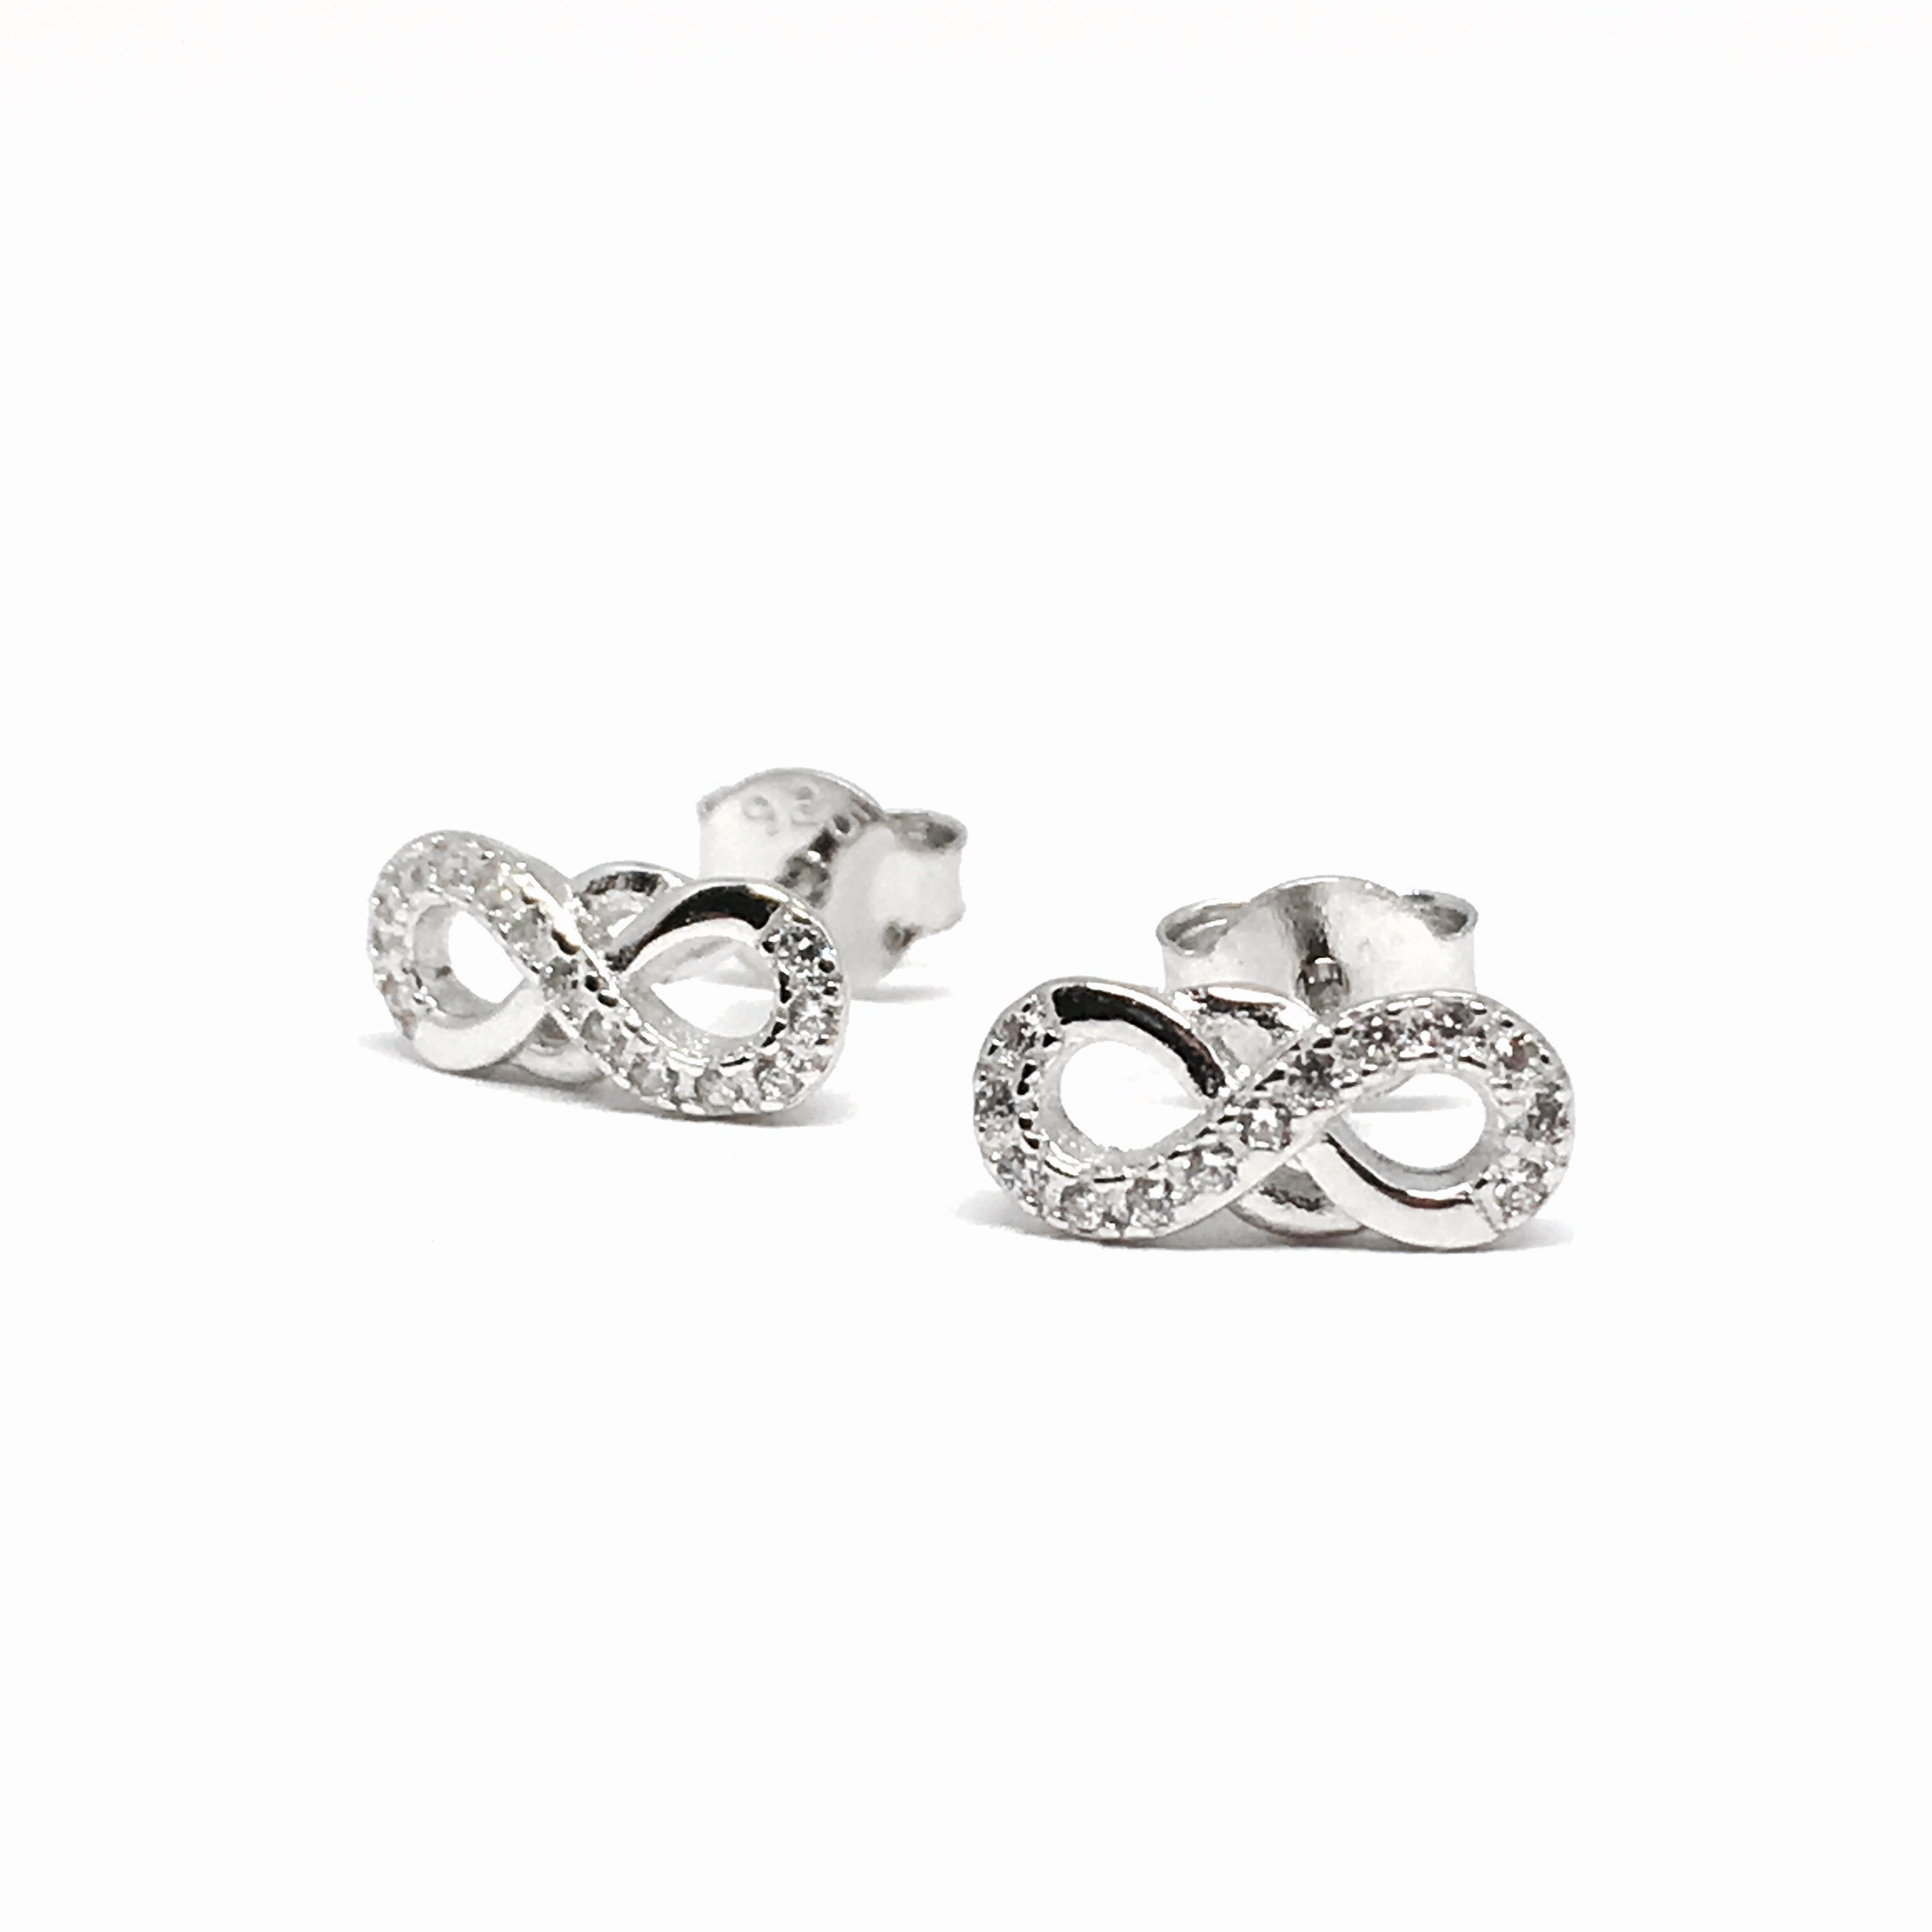 a28967133 STERLING SILVER INFINITY SPARKLE EARRINGS - Contagious Designs